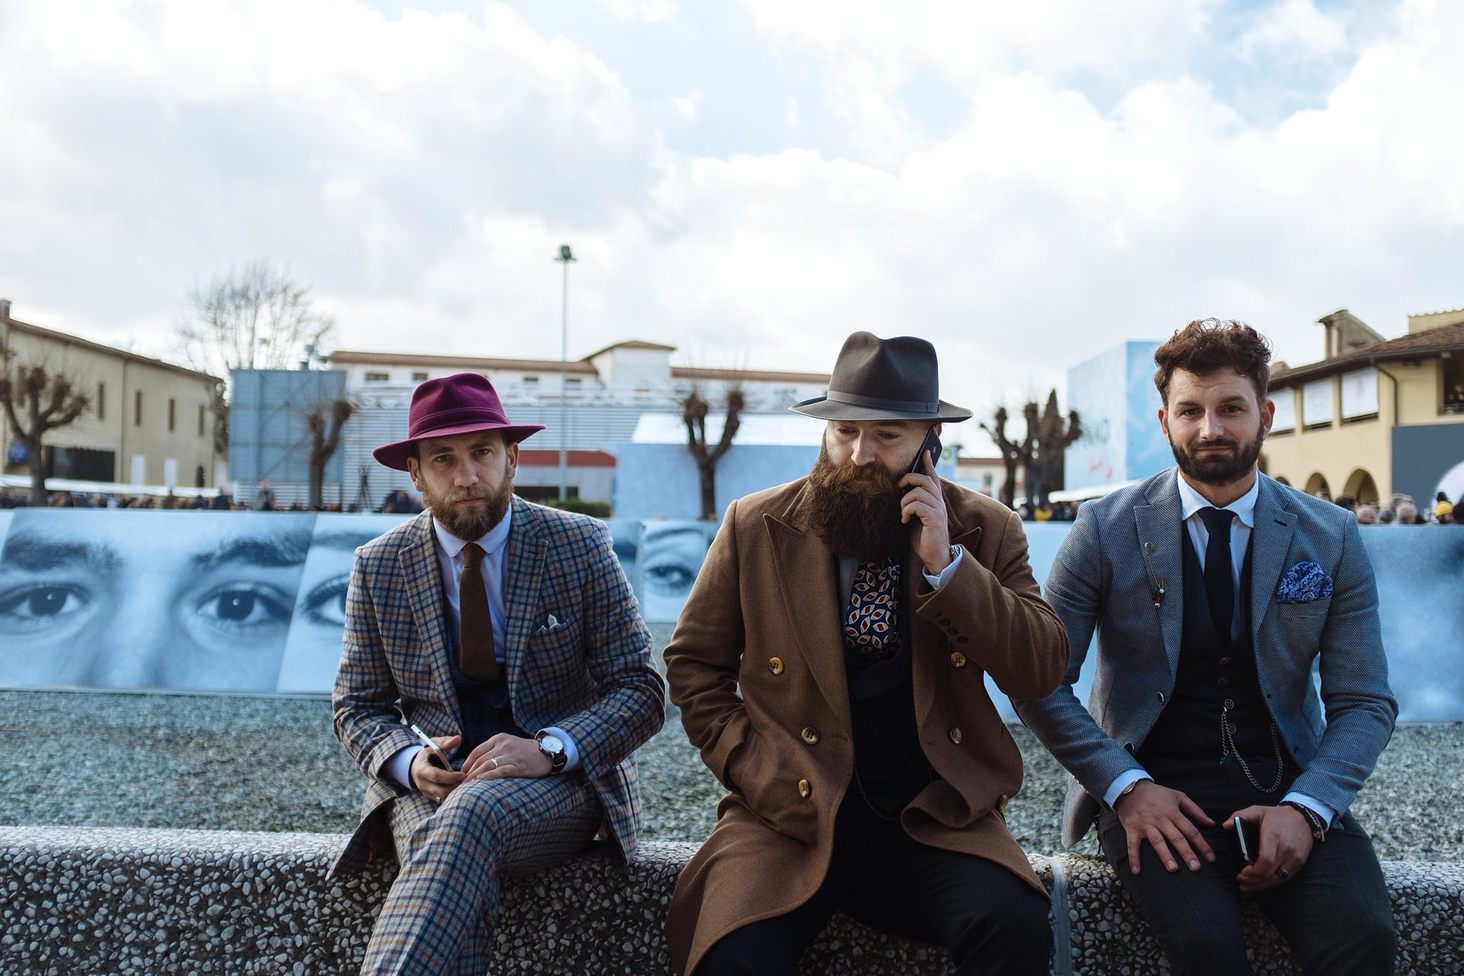 Firenze-89-Pitti-Uomo-Fashion-Photography-3